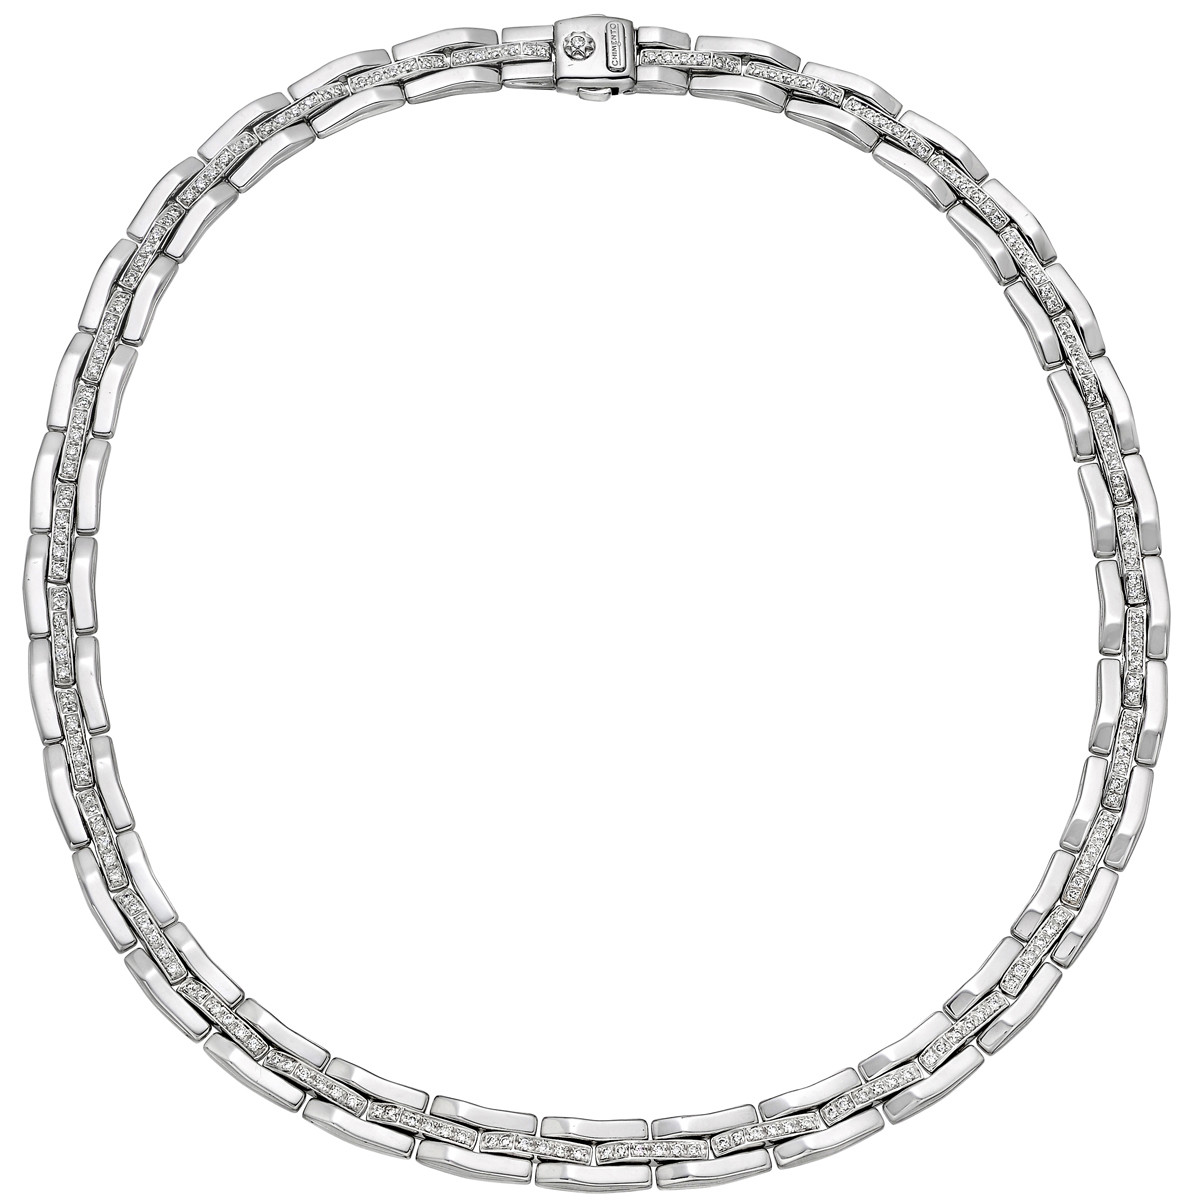 18k White Gold & Diamond Link Necklace